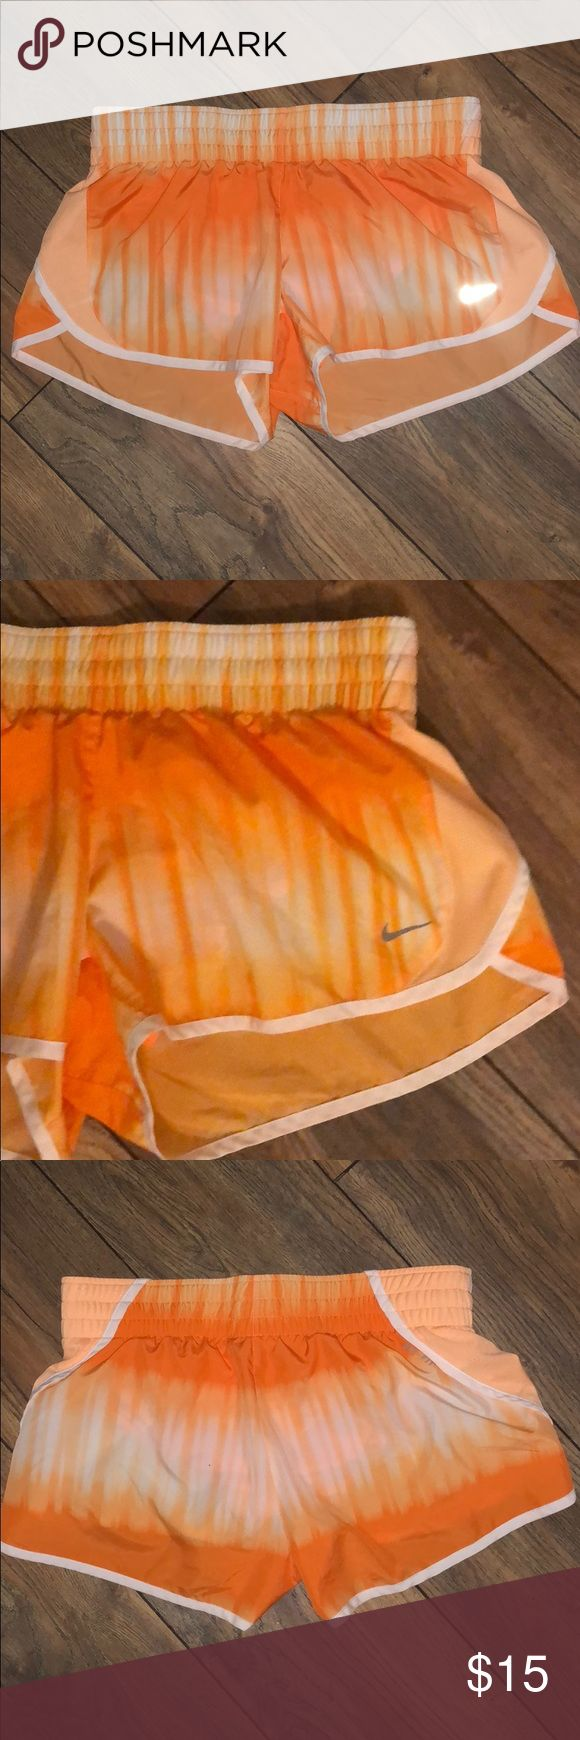 ✔️ Nike DriFit Shorts ✔️ Worn once and in excellent condition. Women's medium. Orange and white ombré shorts. Has inside liner and pocket. Thanks! Nike Shorts